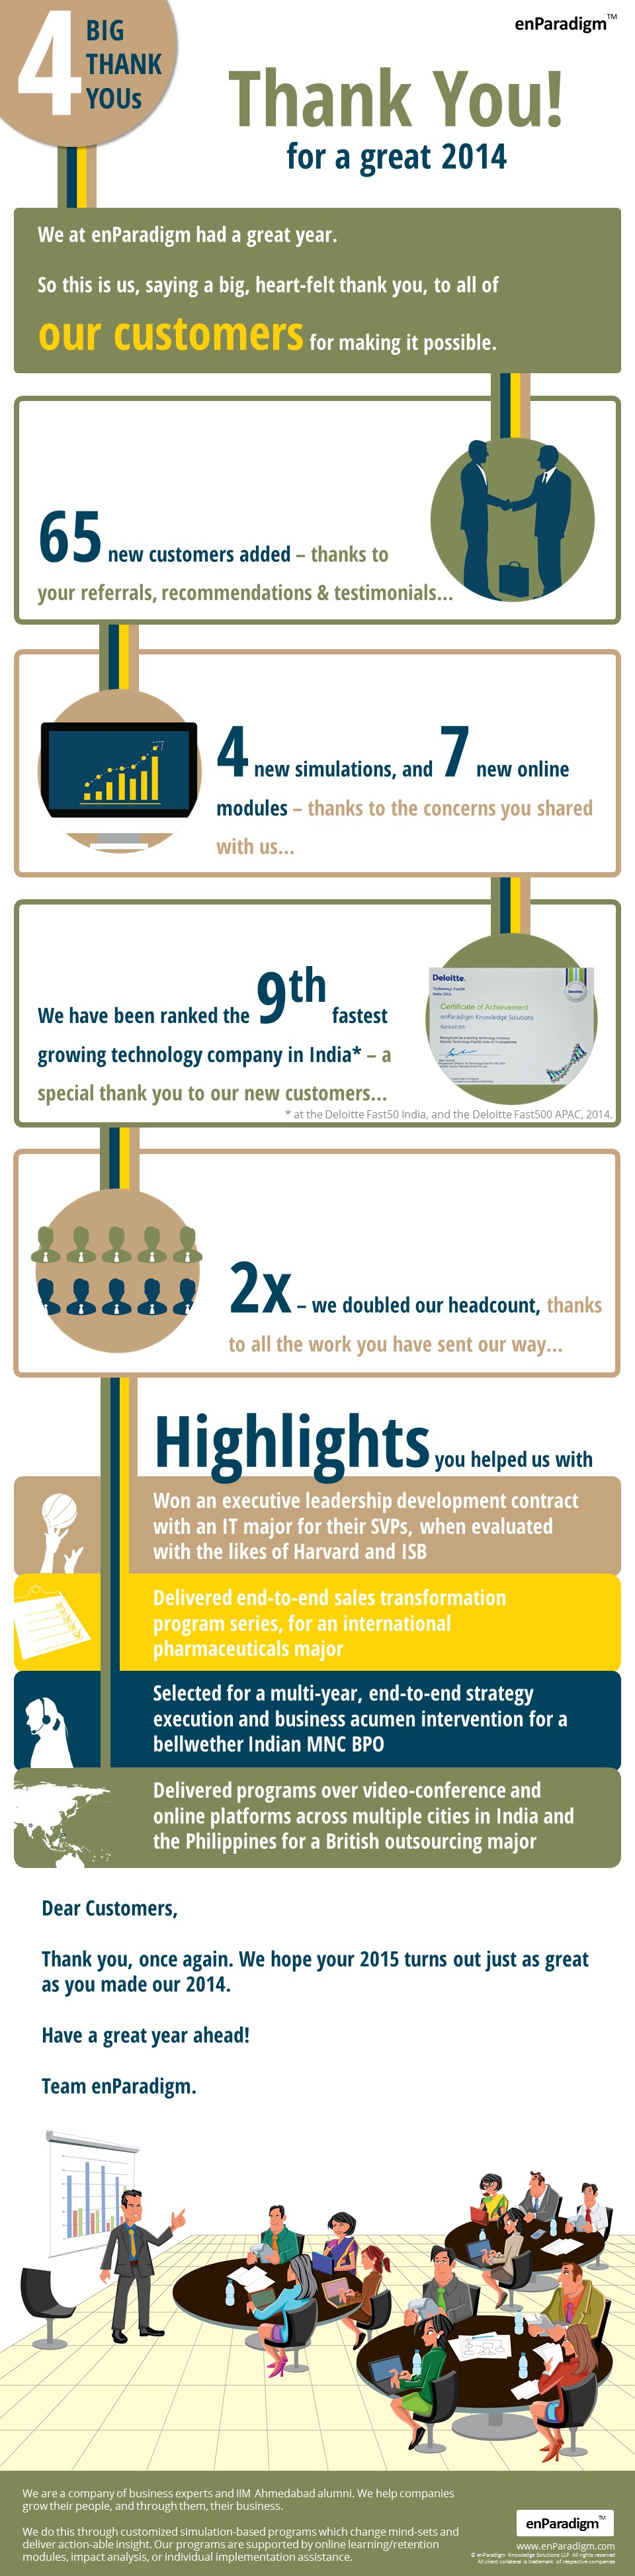 Thank you, customers, for a great 2014